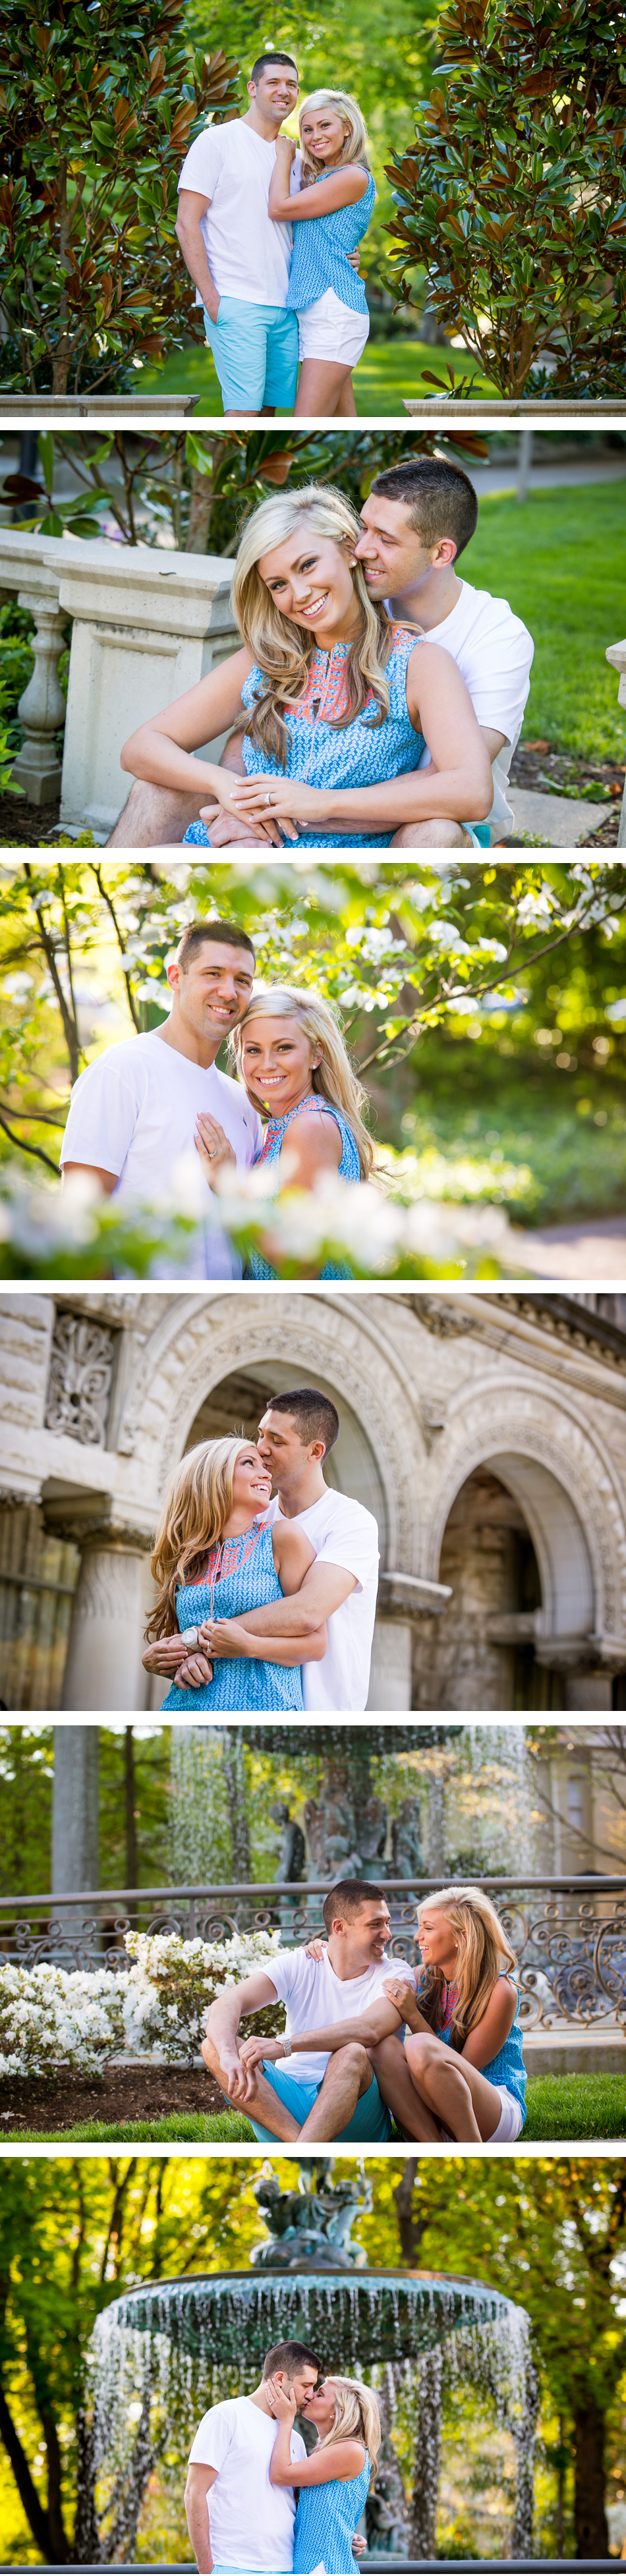 Saint James Court Engagement Photos eMotion image